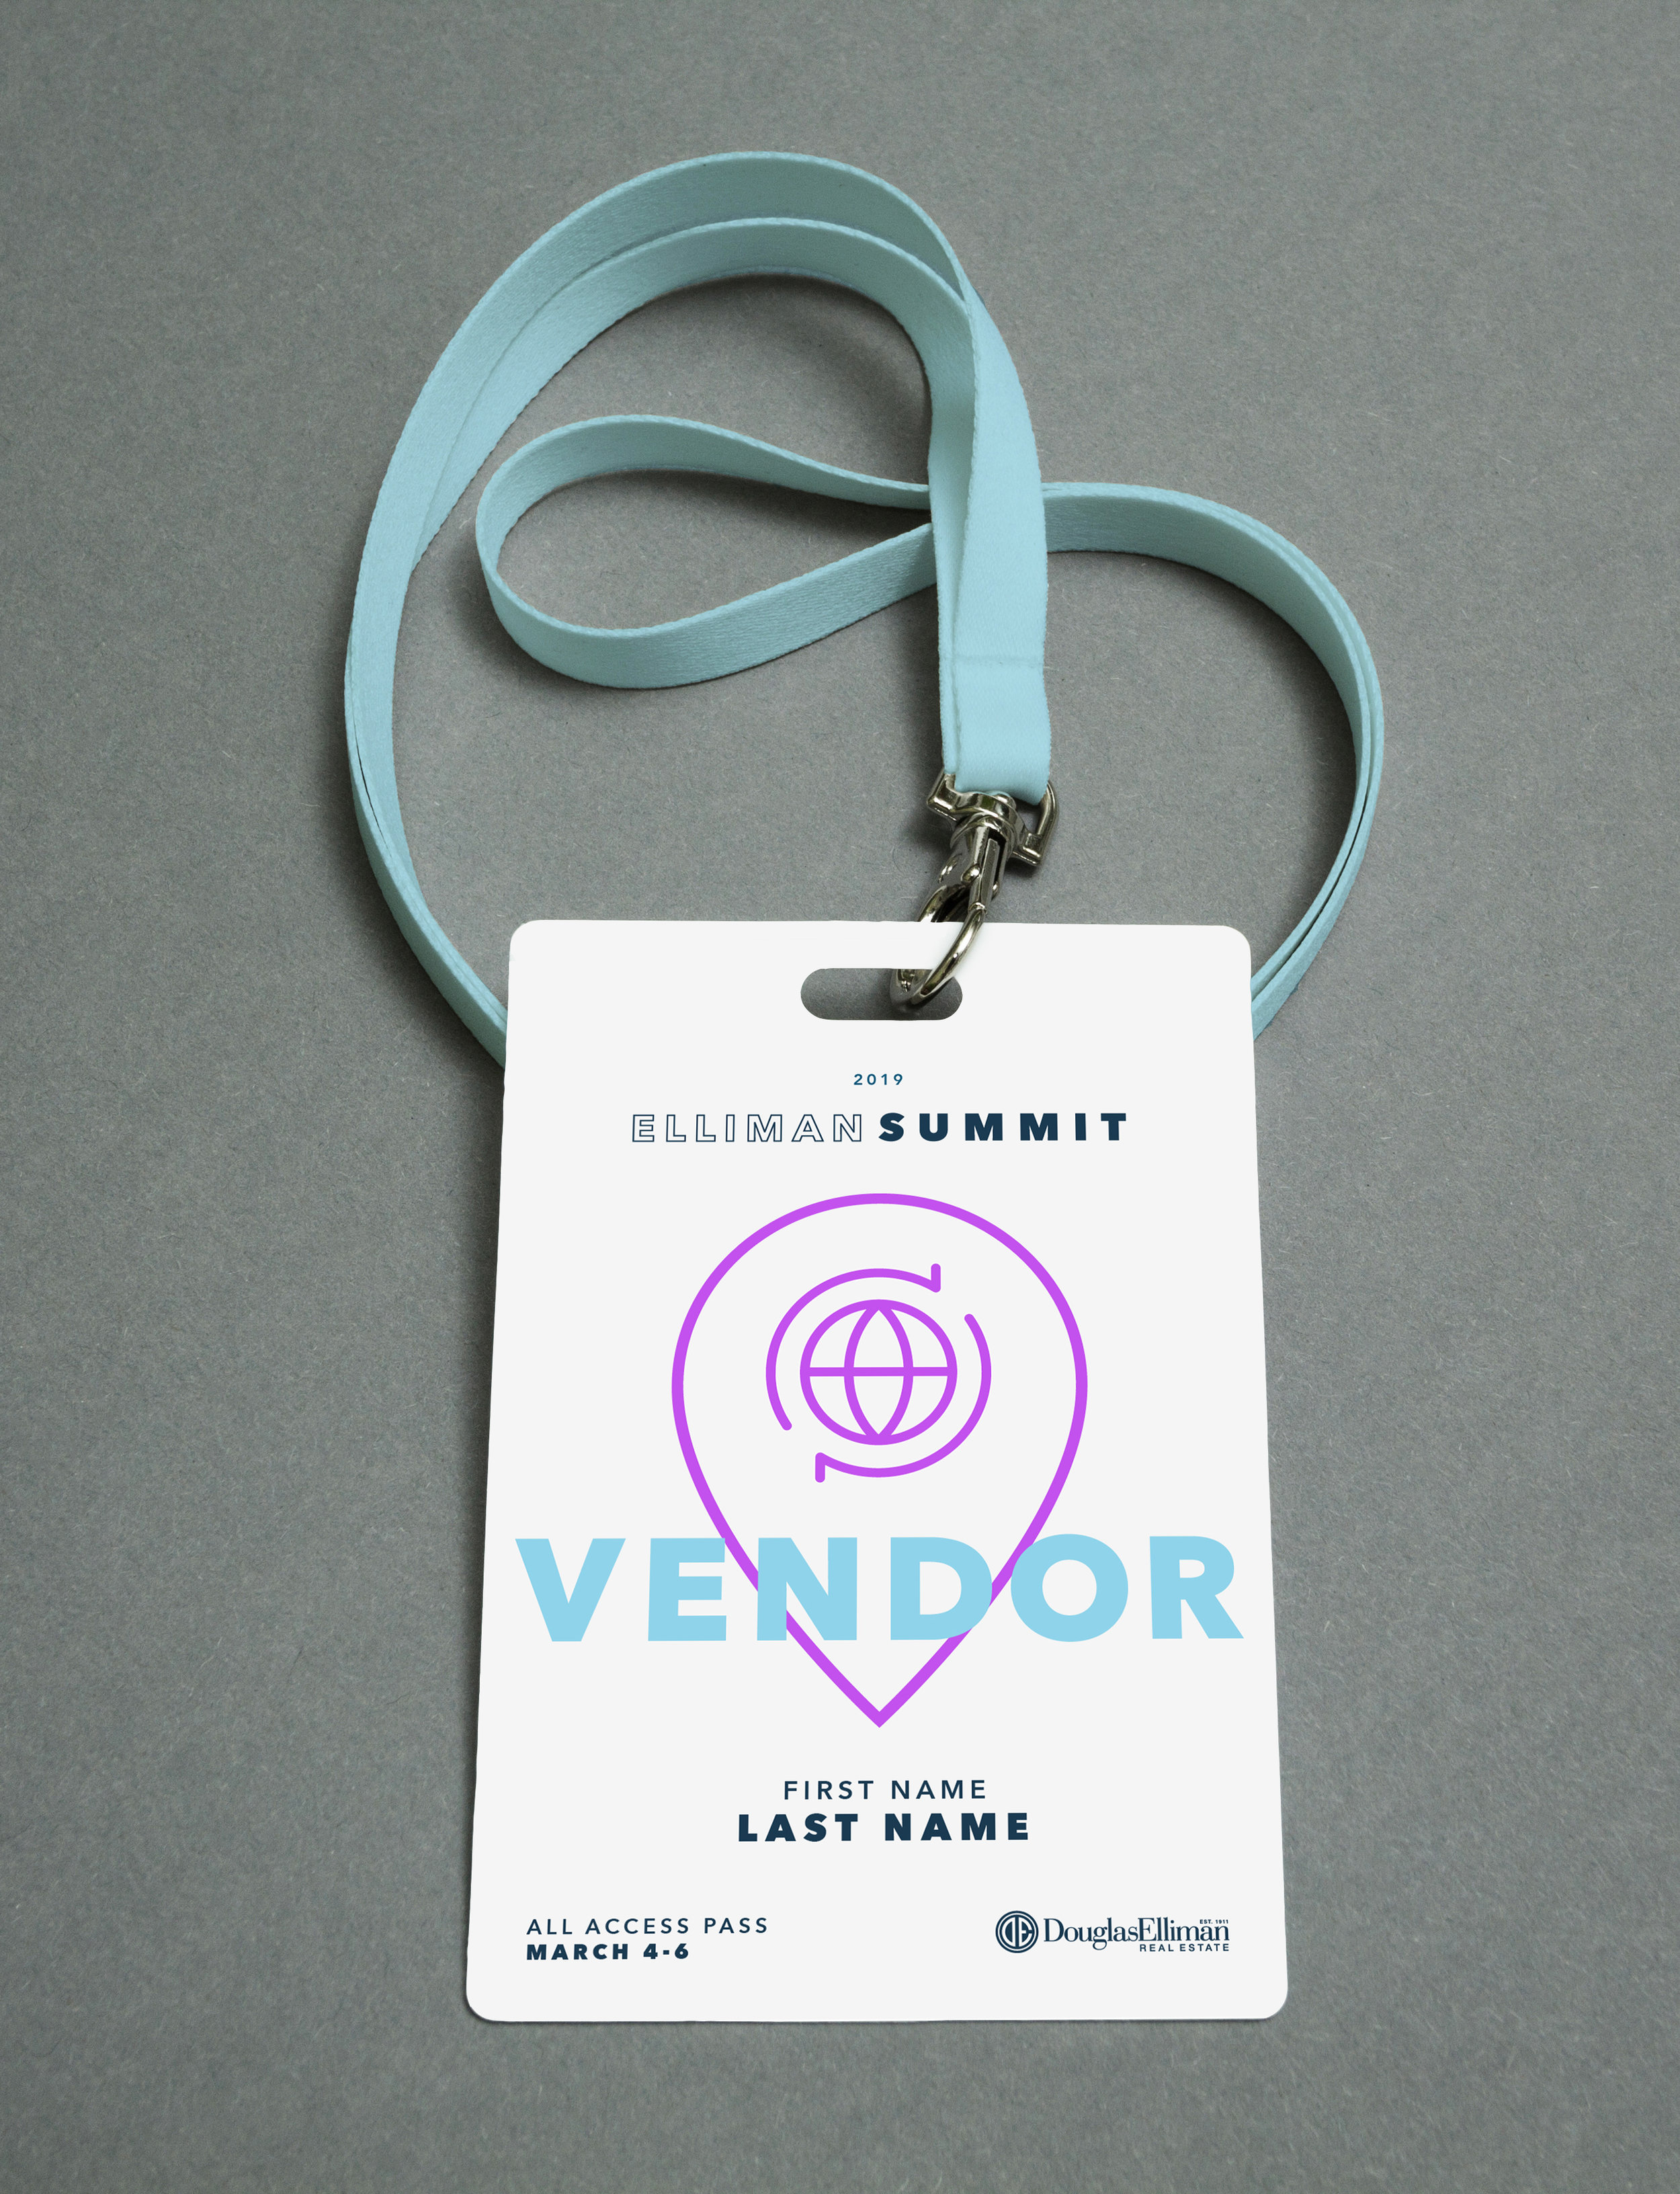 badge_vendor_630474773.jpg